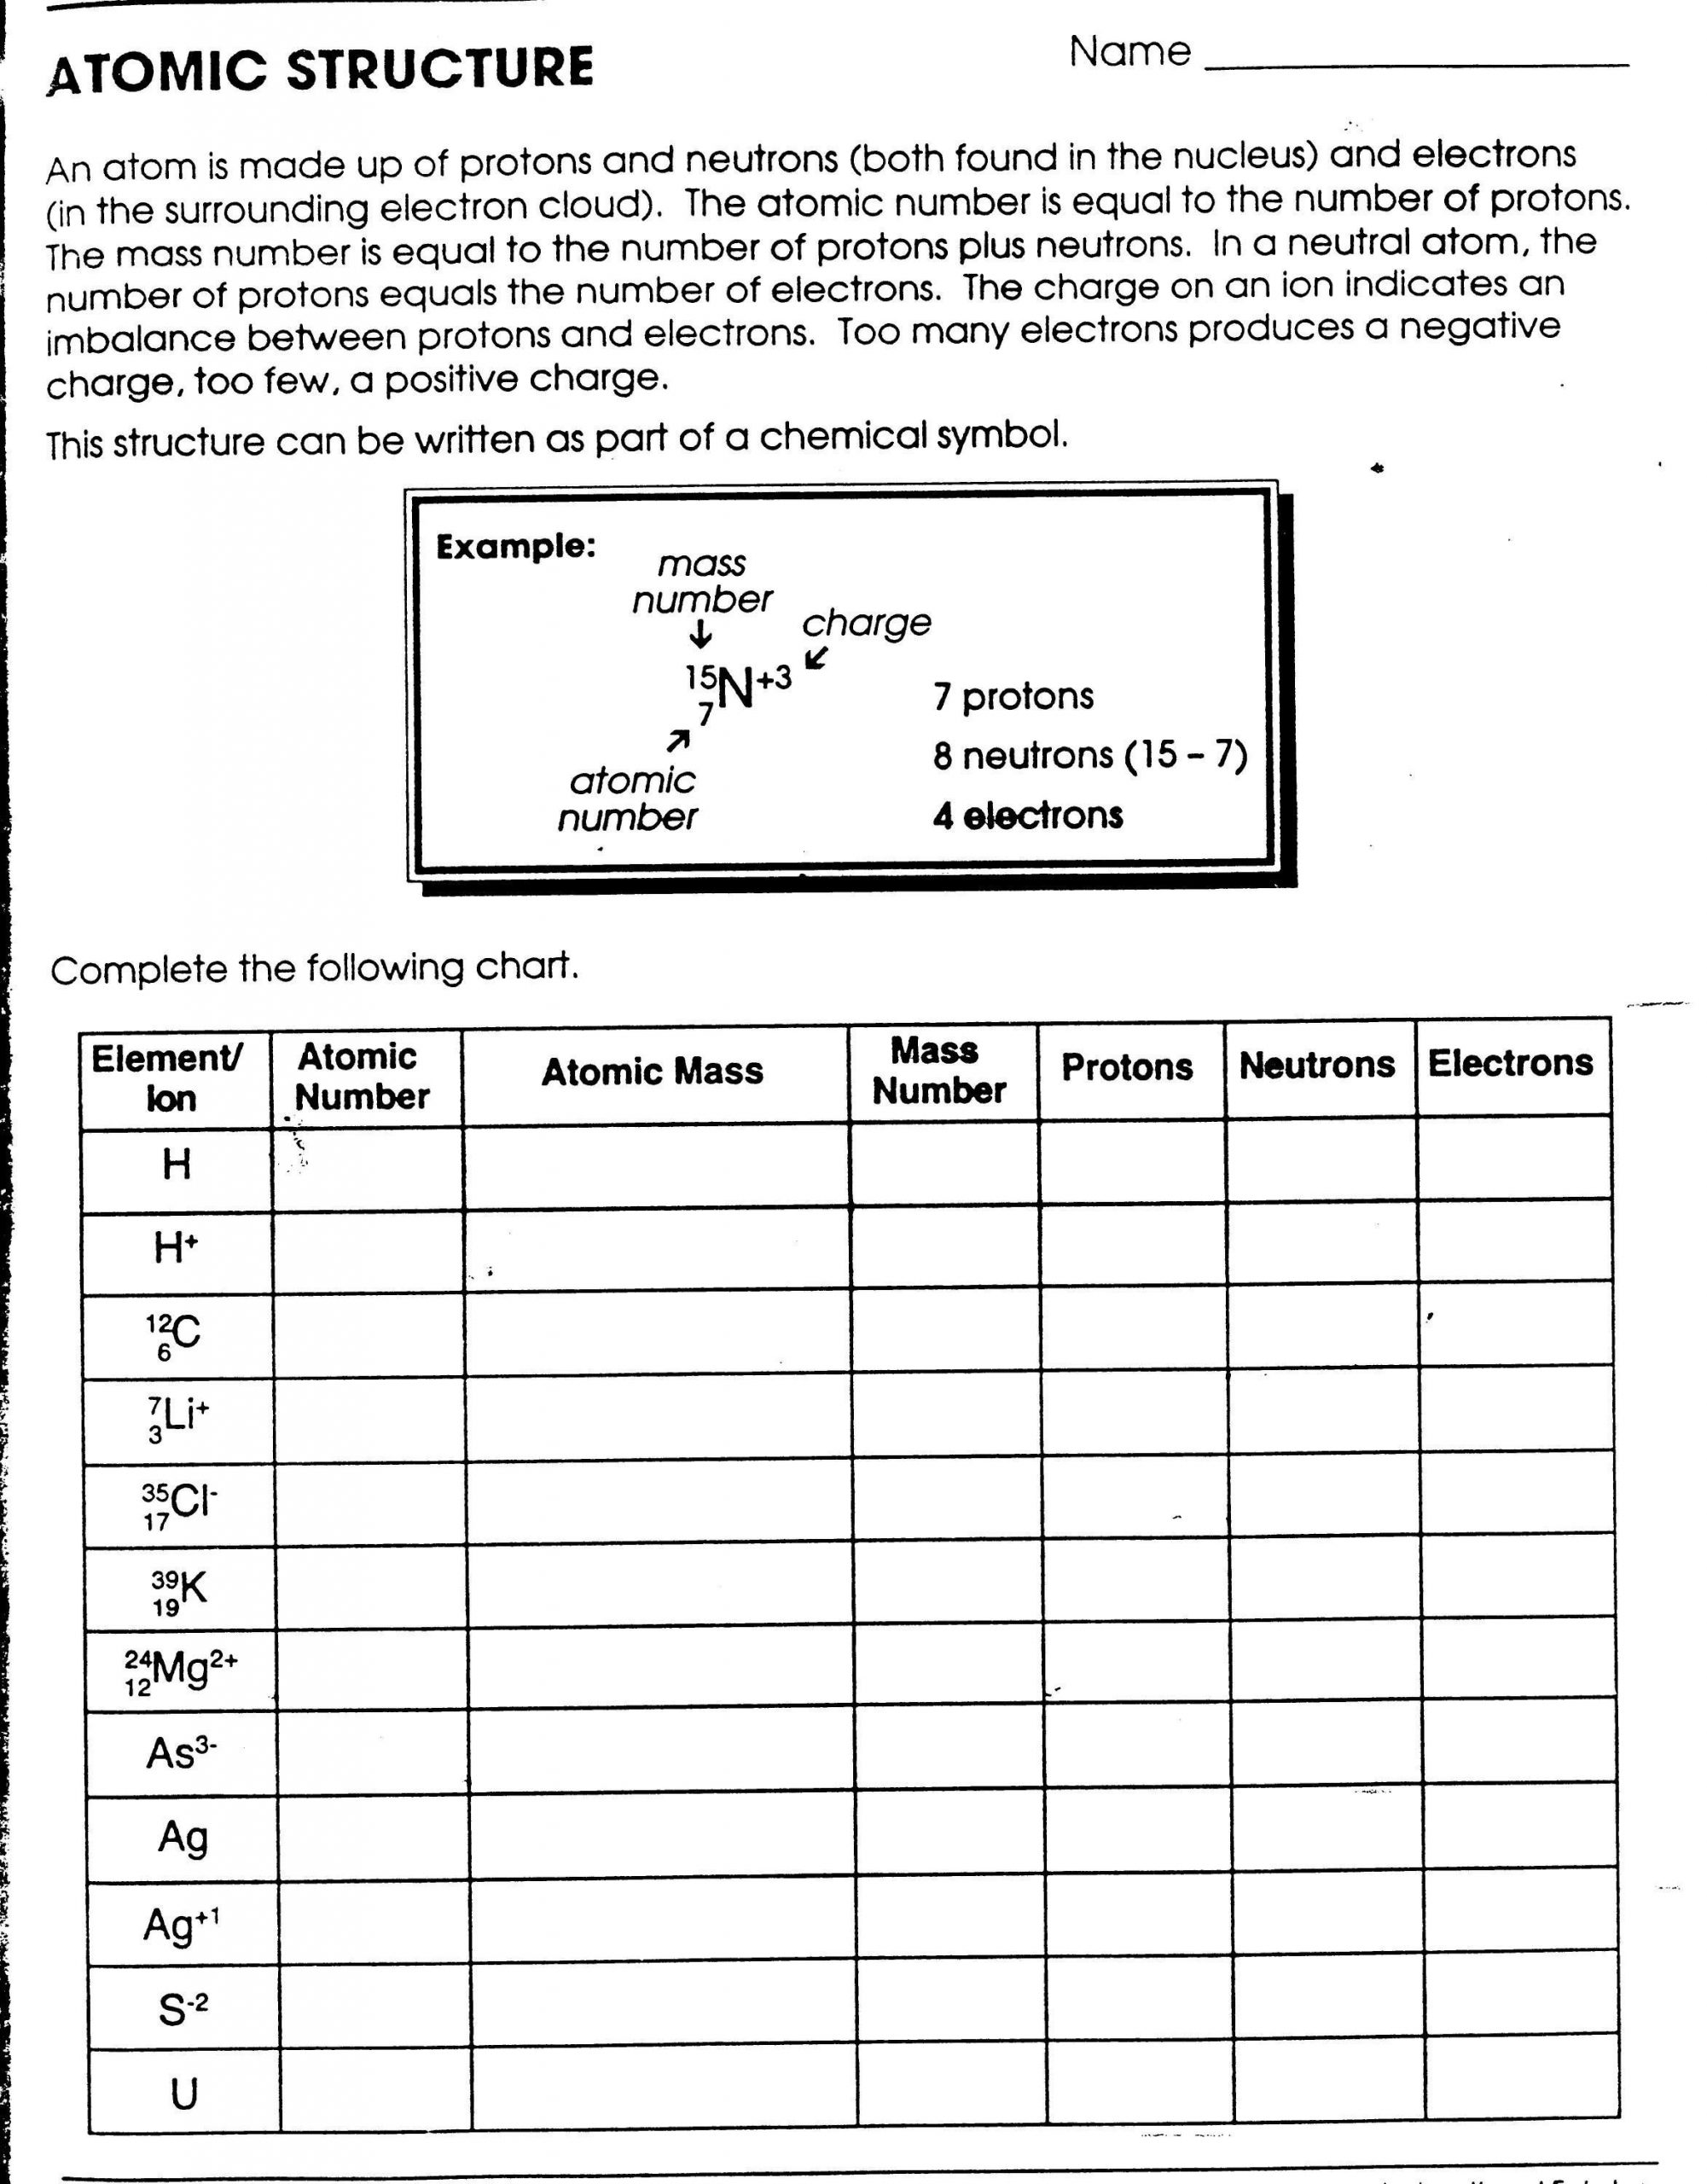 Atom Structure Worksheet Middle School Printables atomic Structure Worksheet Gozoneguide